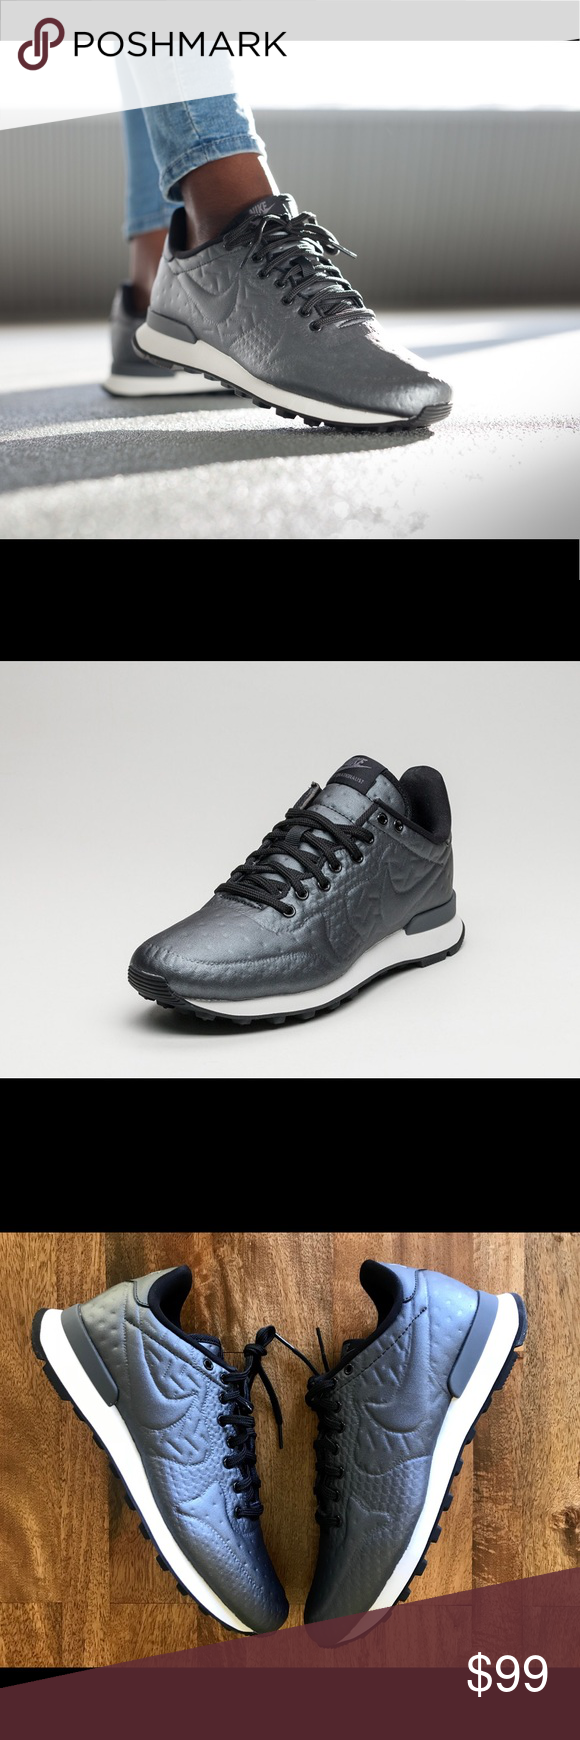 new york 83088 20e3b Nike Women s Internationalist Metallic Sneakers The Nike Internationalist  Women s Shoe has an iconic look inspired by